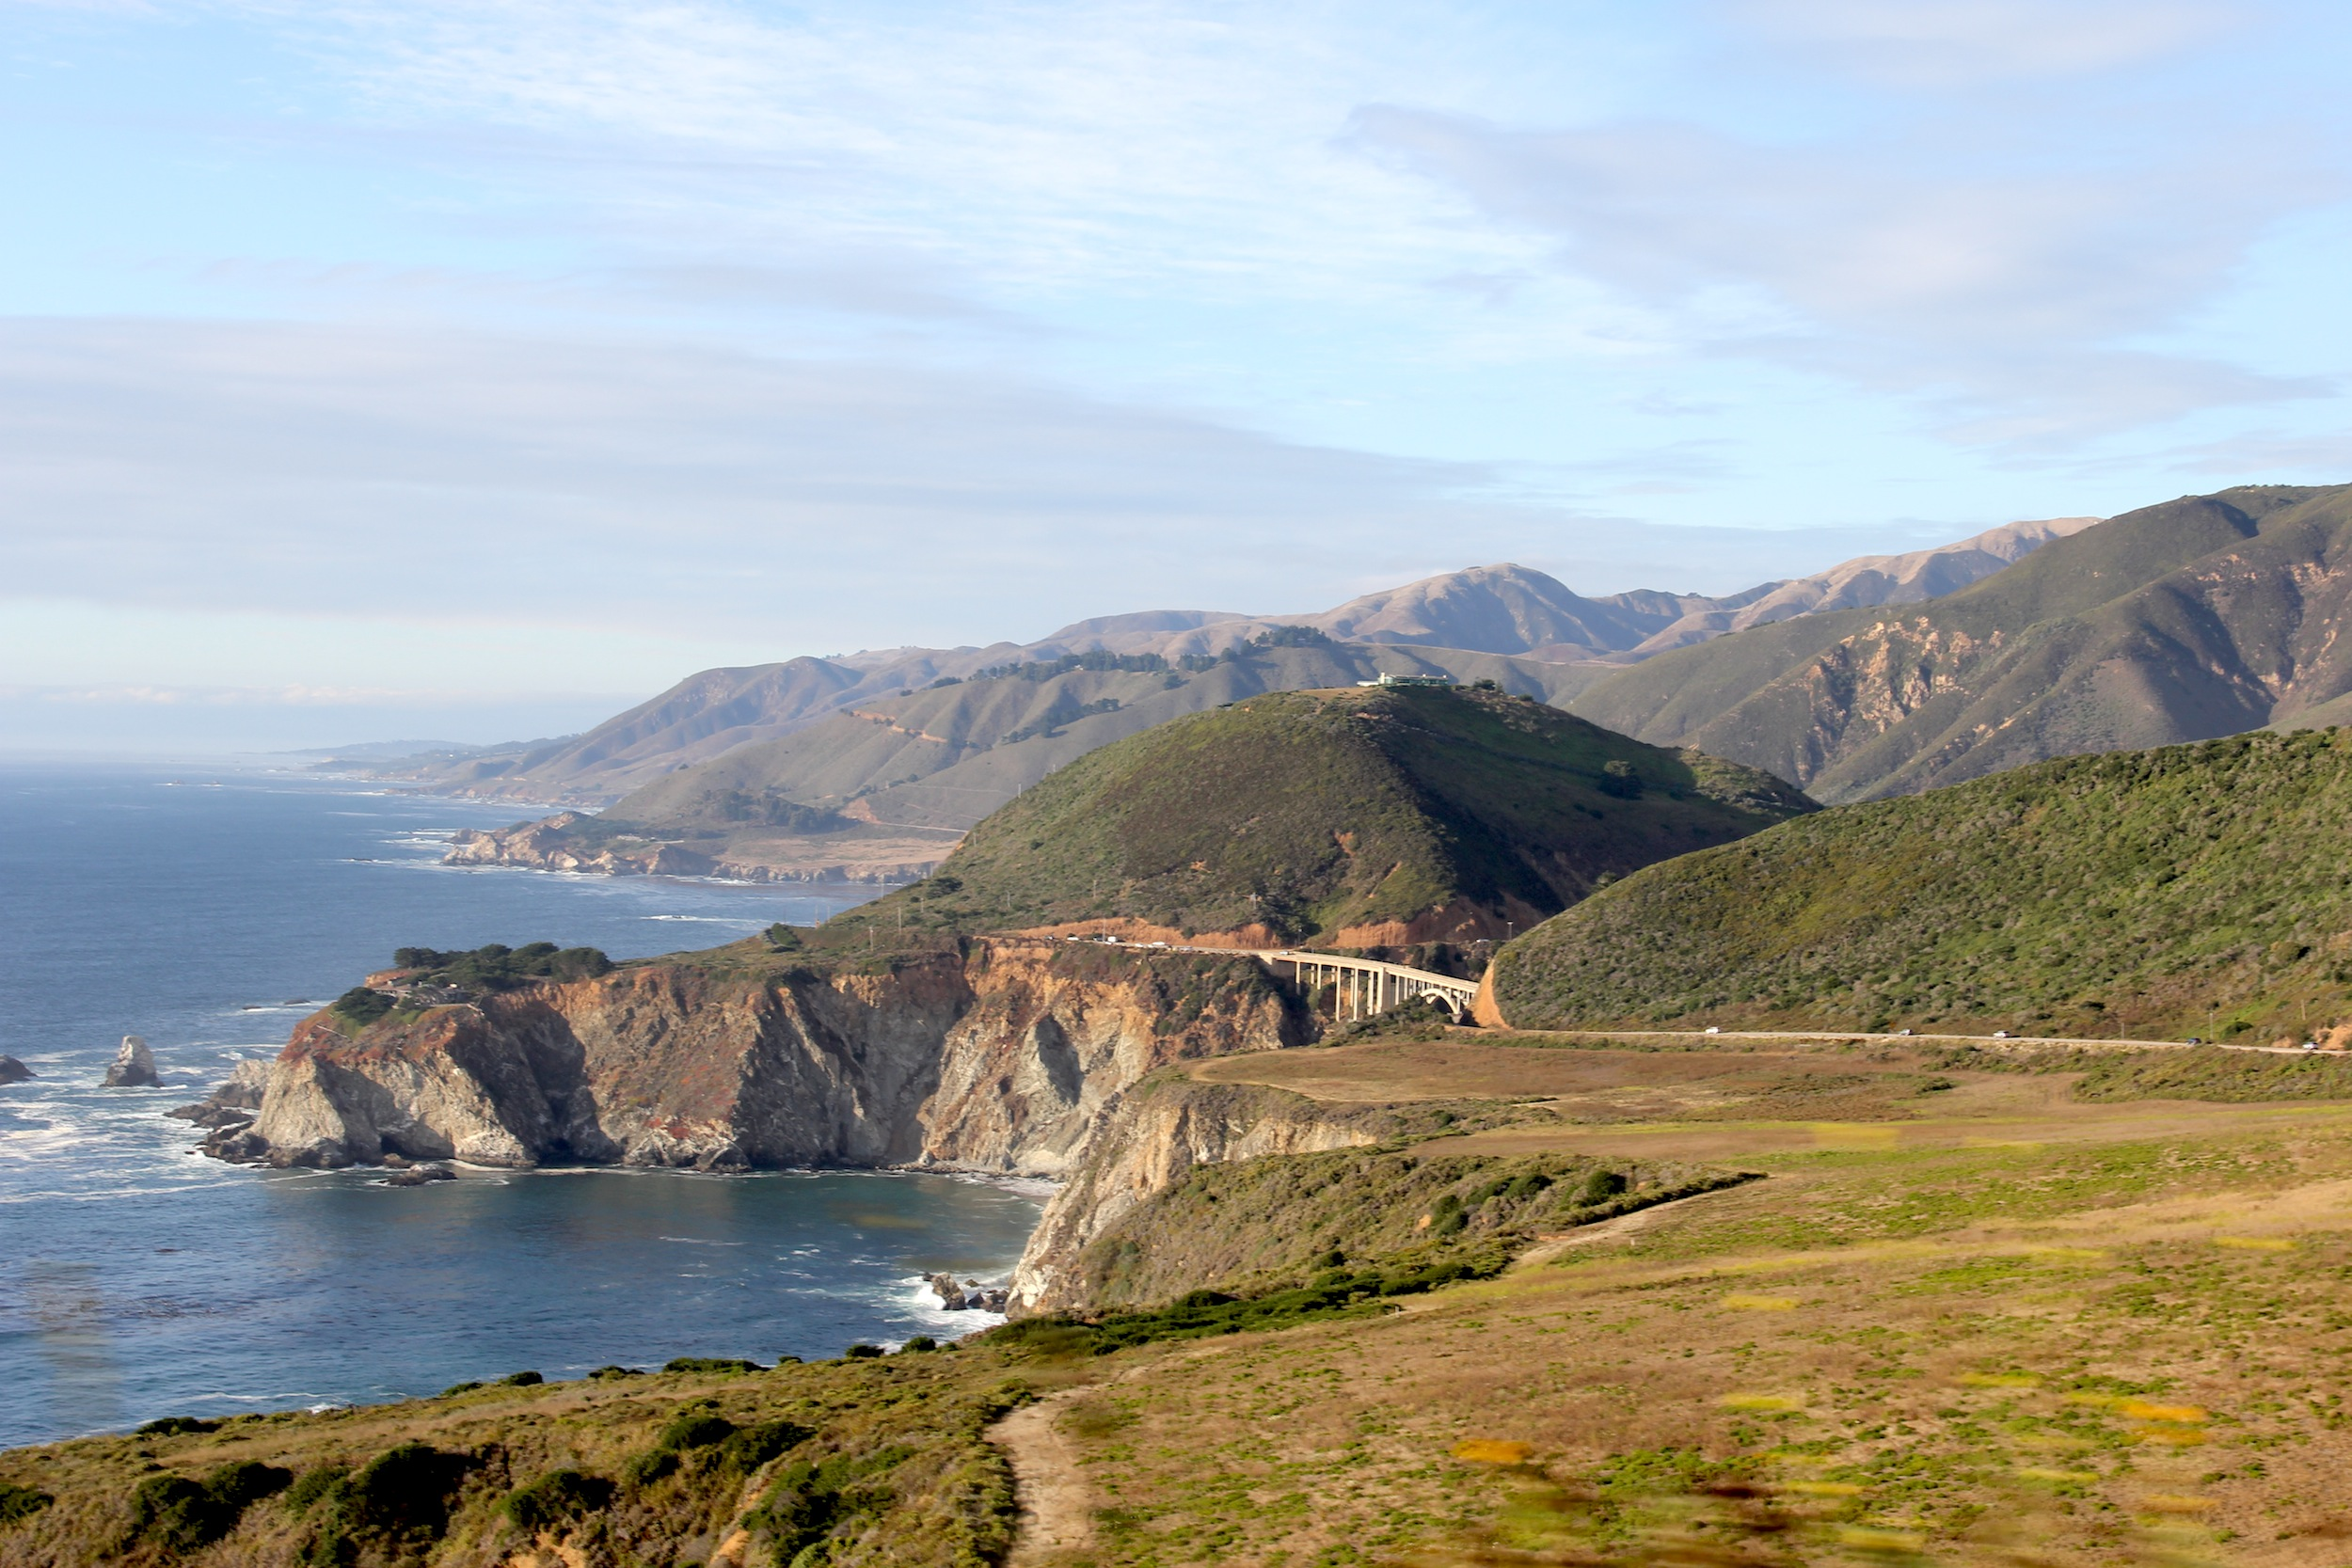 Driving through Big Sur, Bixby Bridge in background